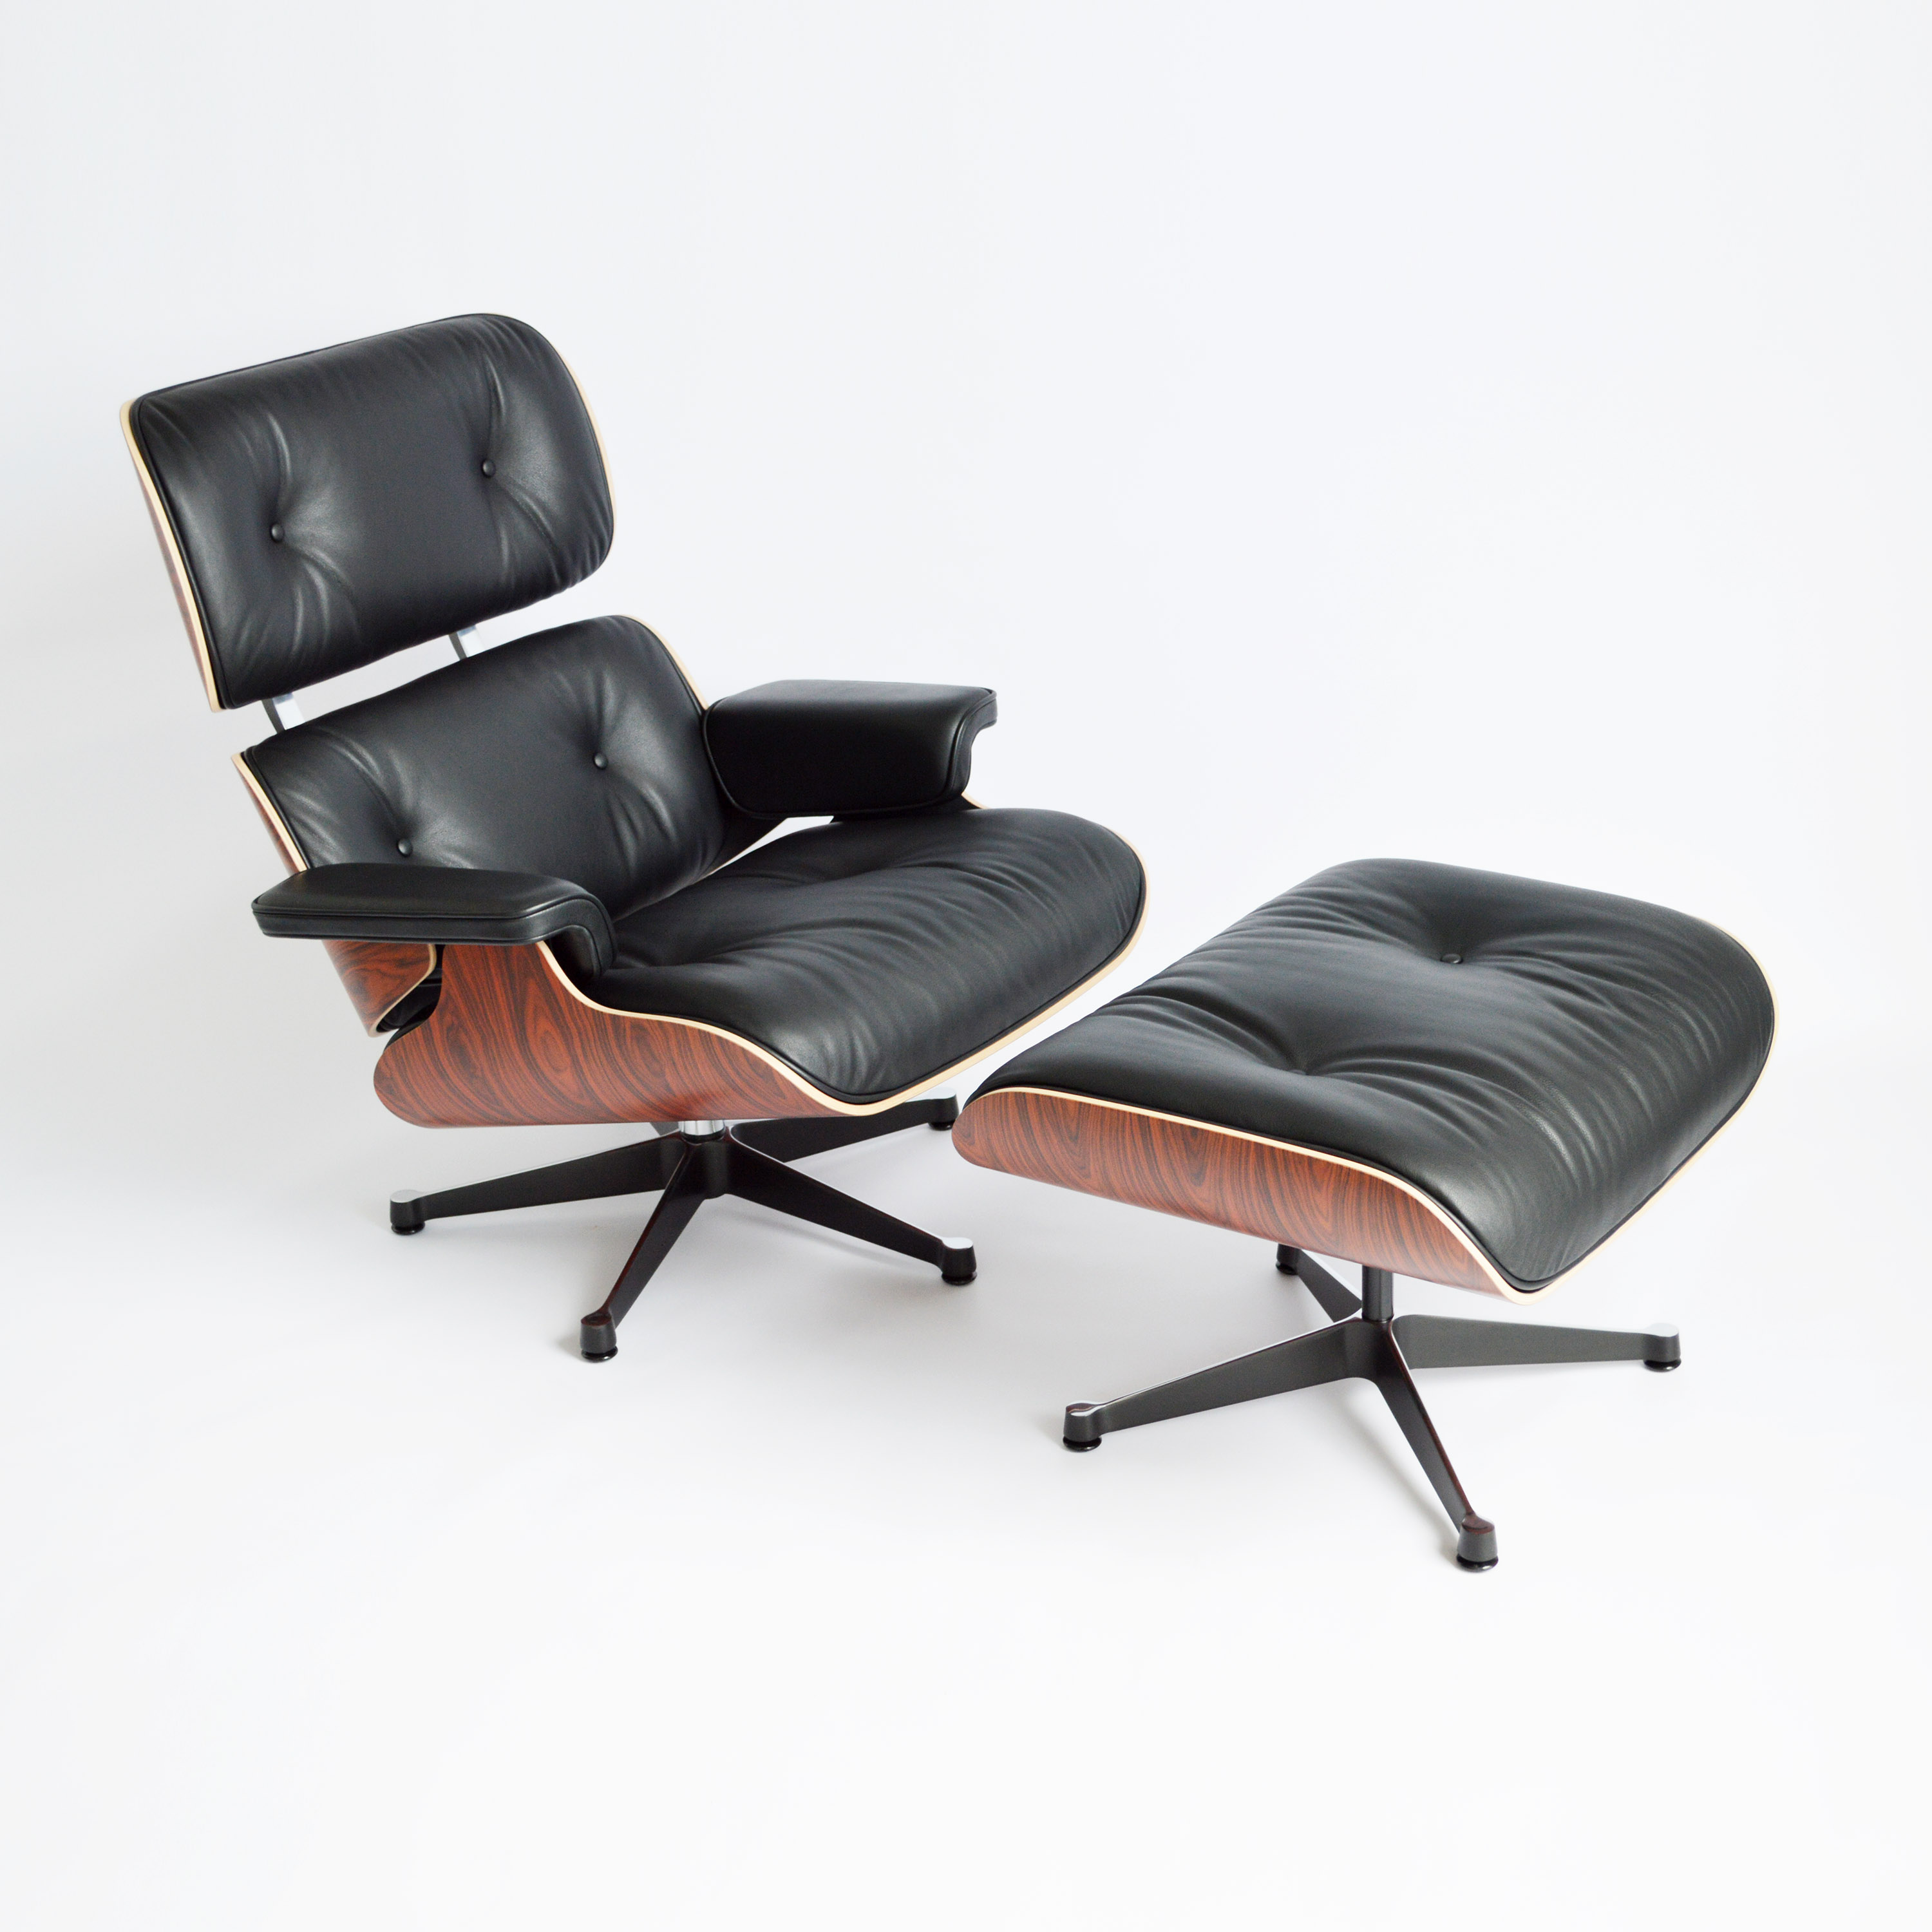 Eames Lounge Sessel Vitra Eames Lounge Chair And Ottoman Palisander Midmodern De